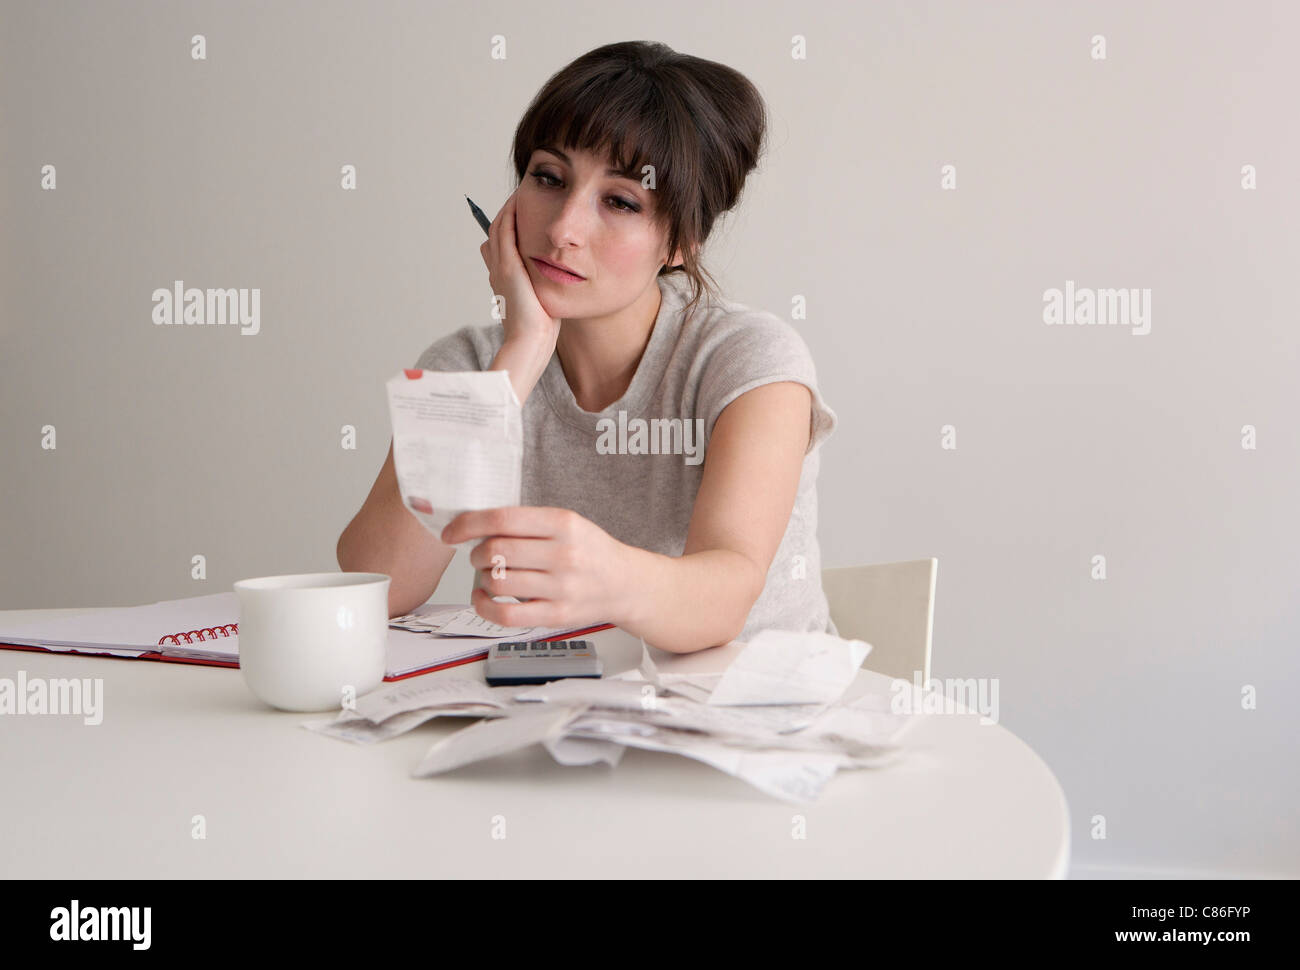 Woman reviewing receipts - Stock Image